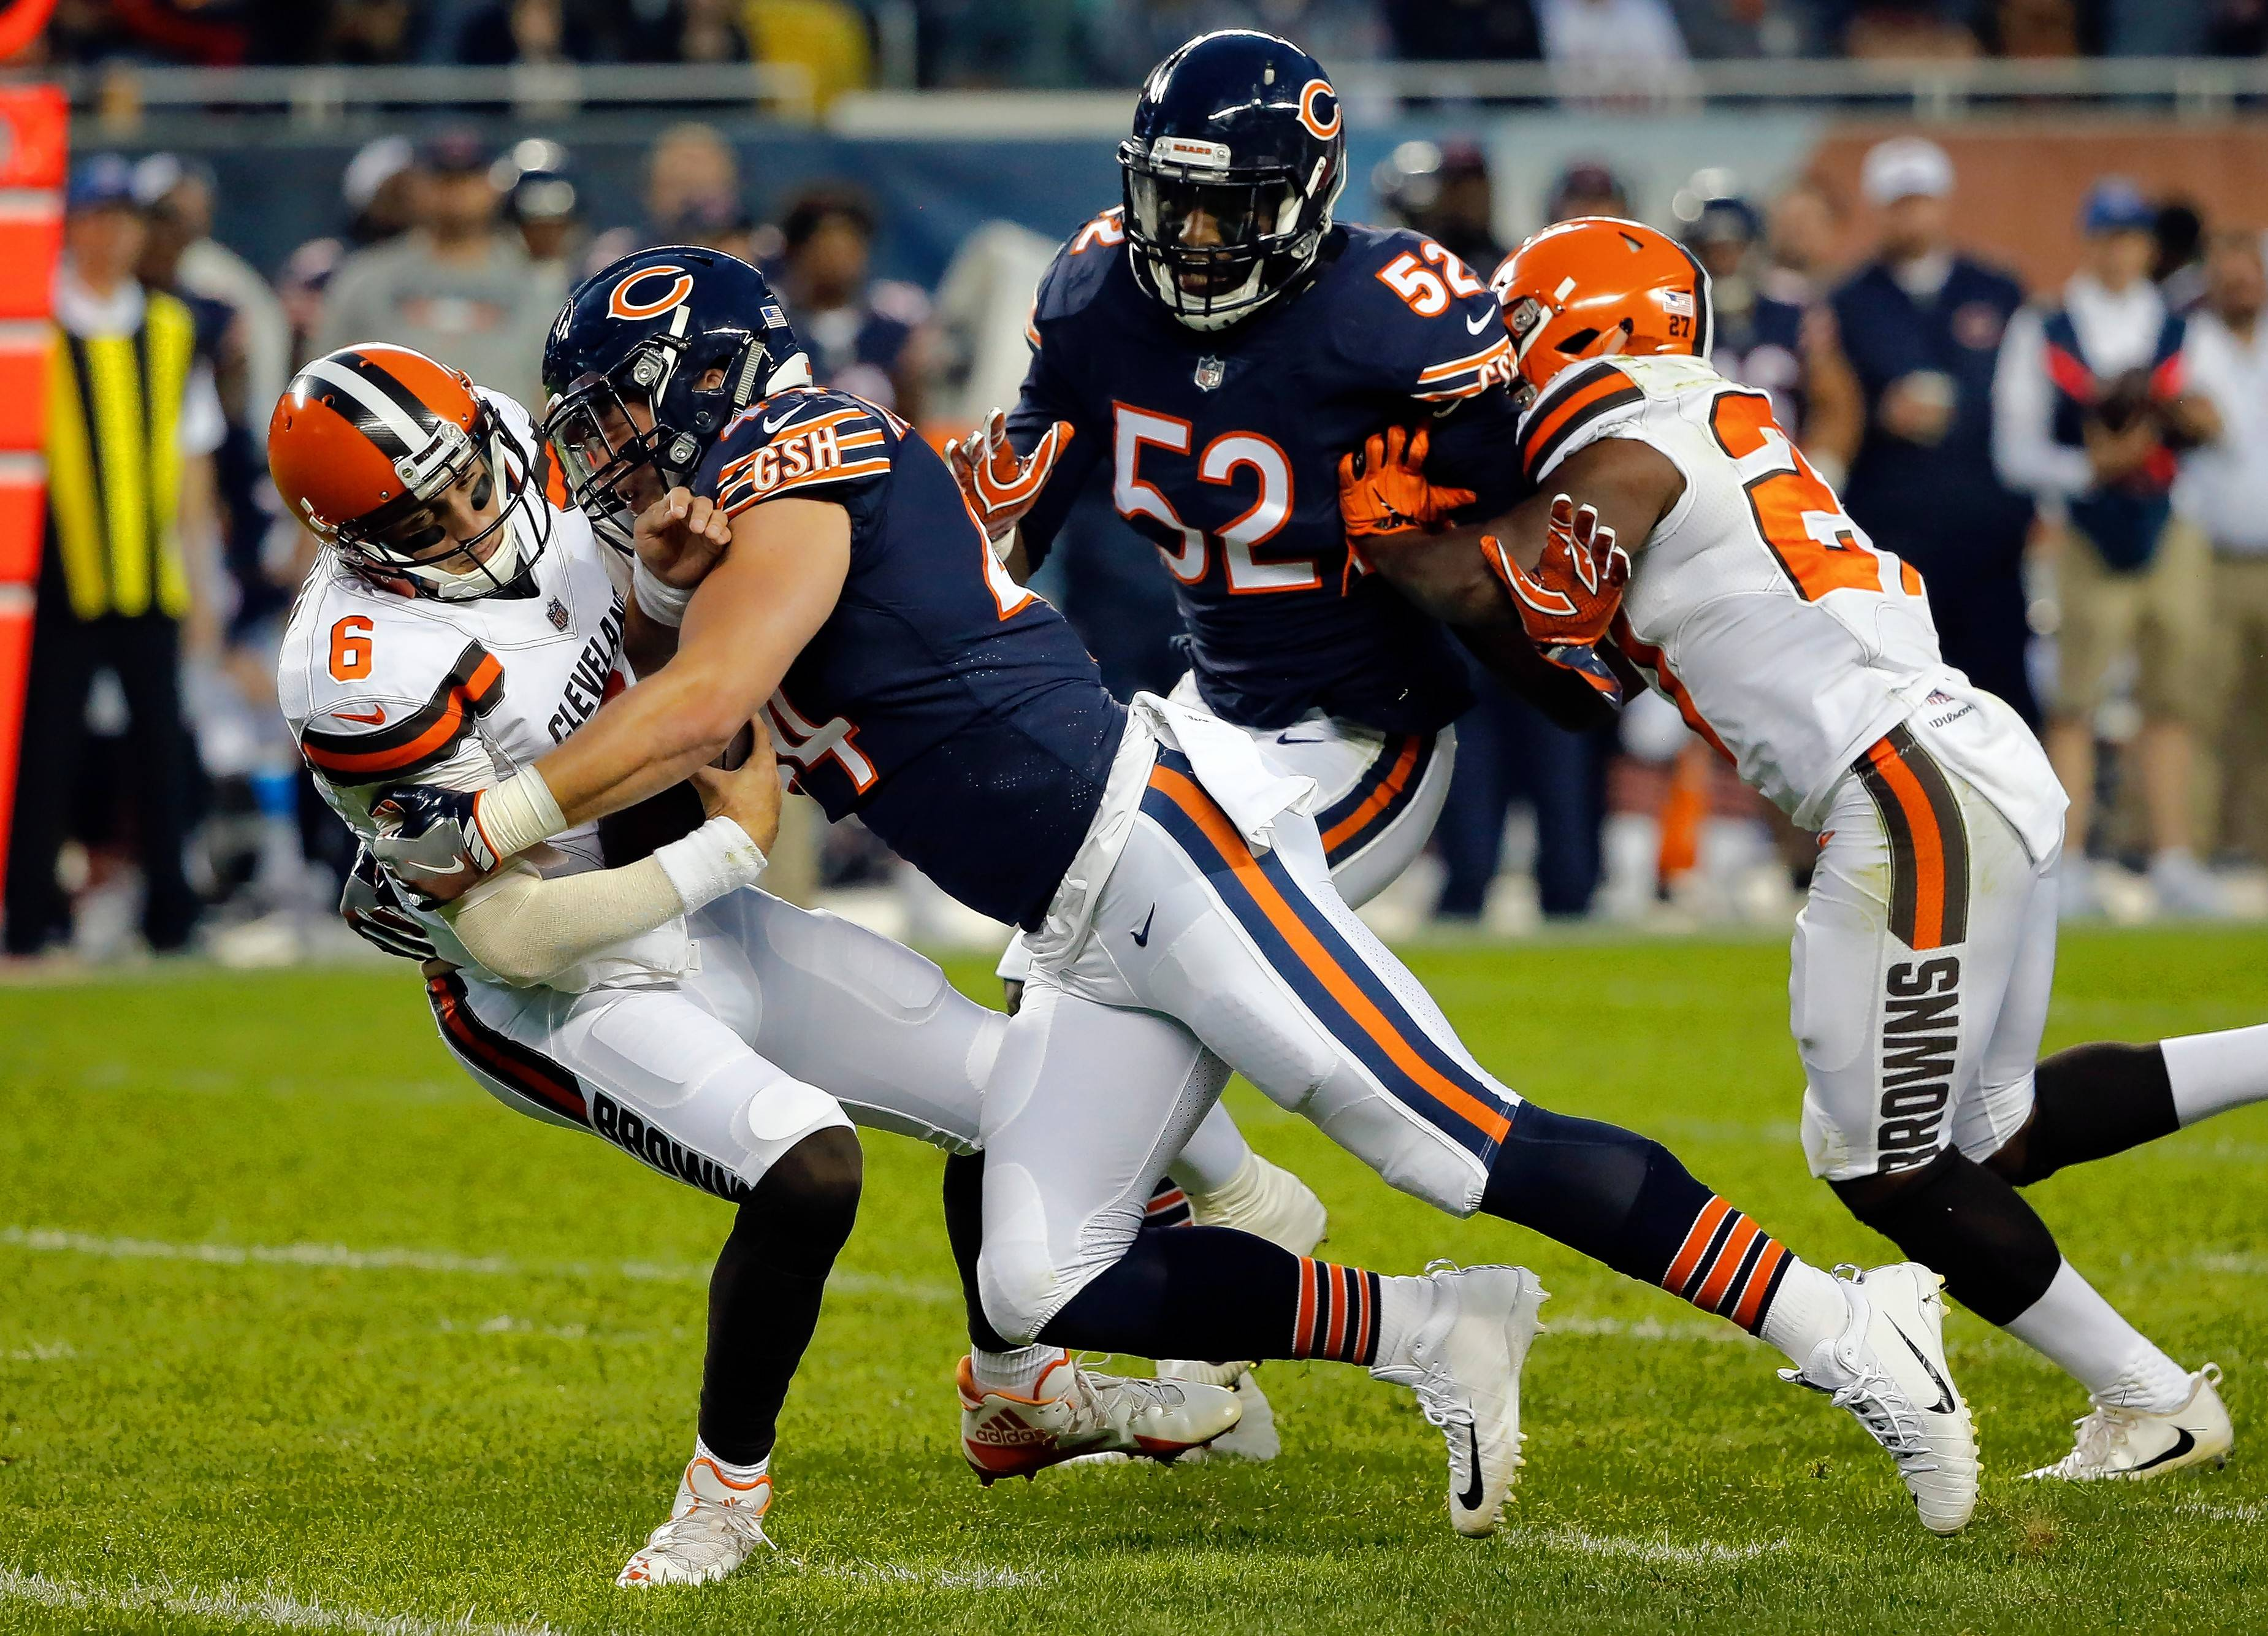 Chicago Bears inside linebacker Nick Kwiatkoski (44) sacks Cleveland Browns quarterback Cody Kessler (6) in the Bears pre-season home game Aug. 31.